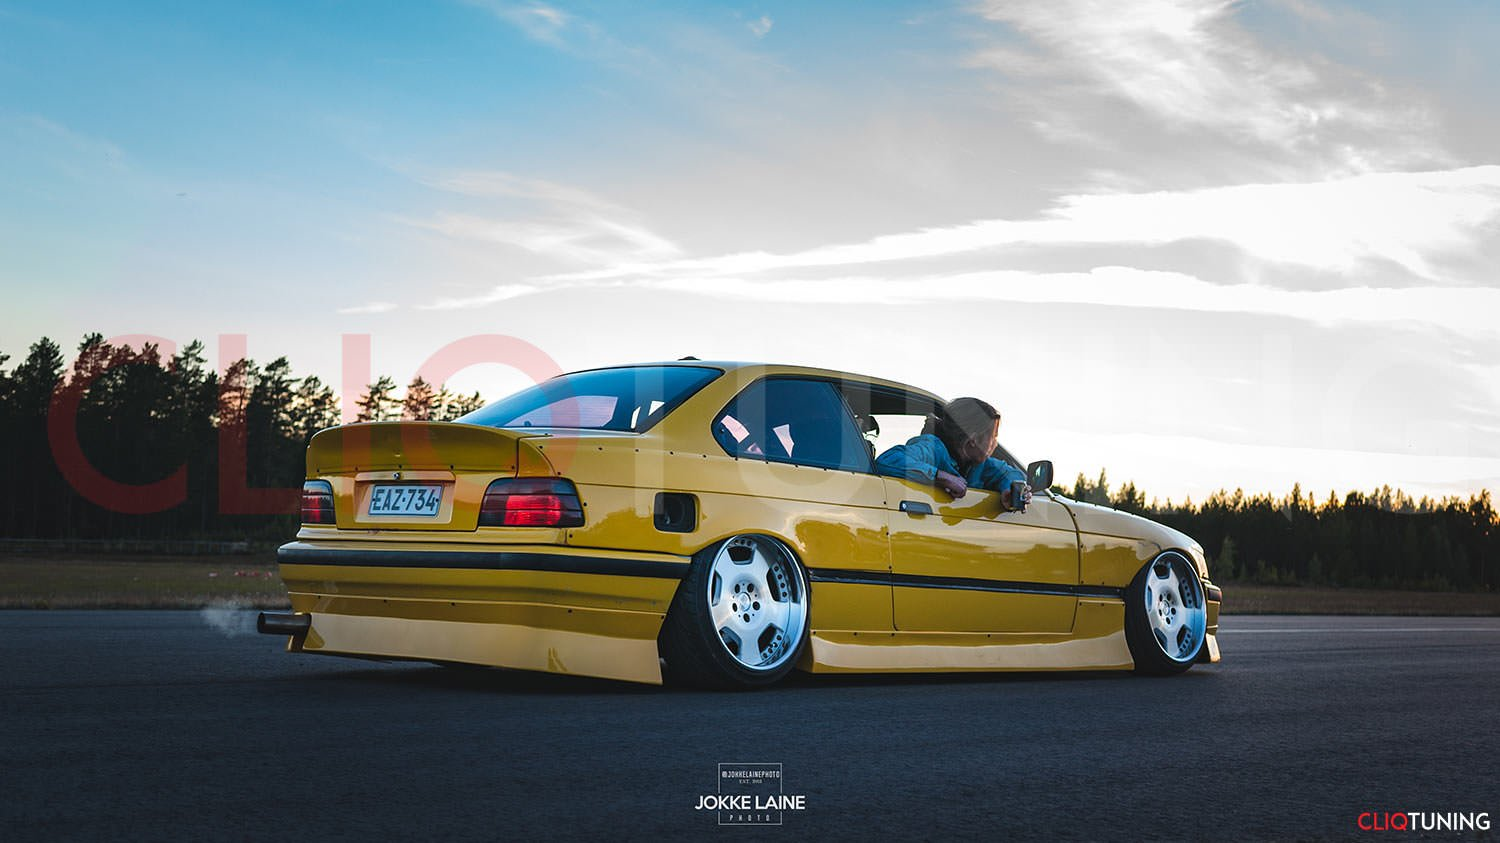 hight resolution of bmw e36 coupe aero kit jap bn style bumper lips and side skirts for drifting and